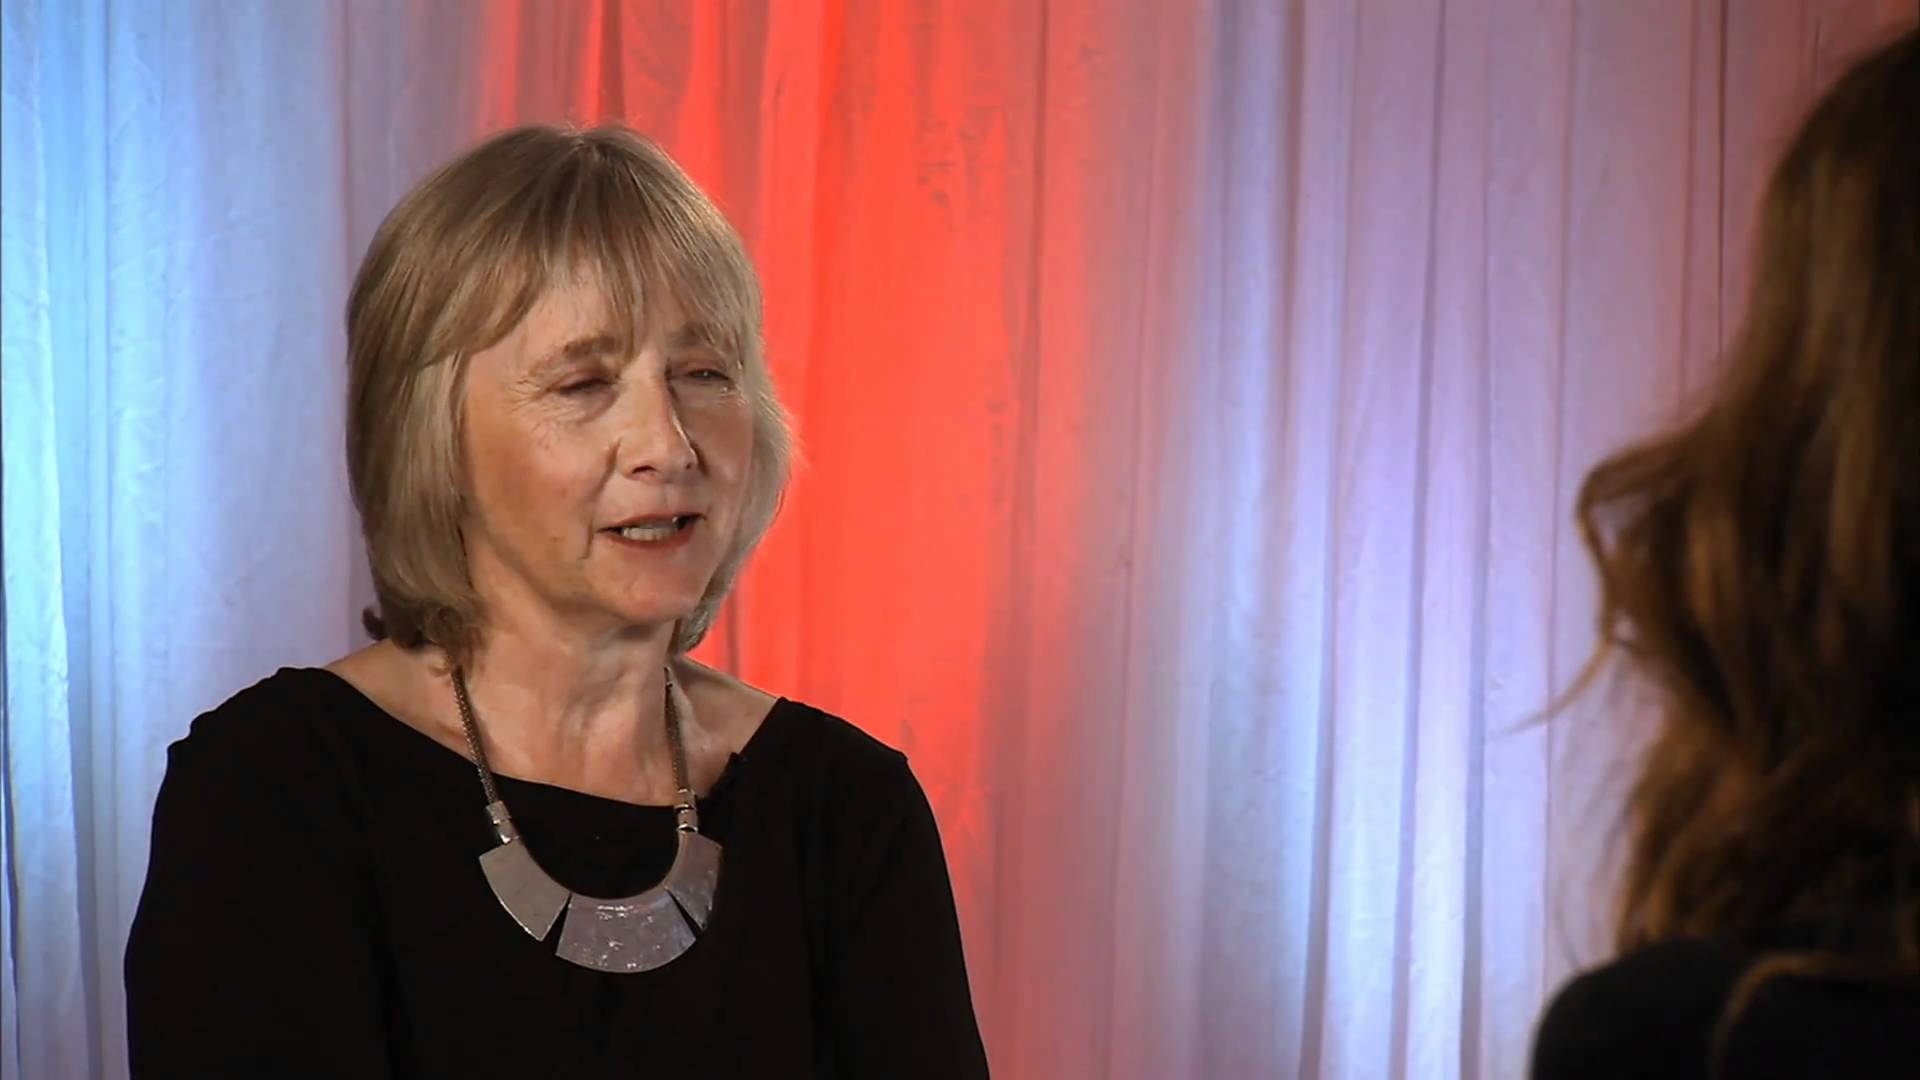 Gemma Jones (born 1942) nudes (93 foto and video), Tits, Paparazzi, Twitter, cameltoe 2019